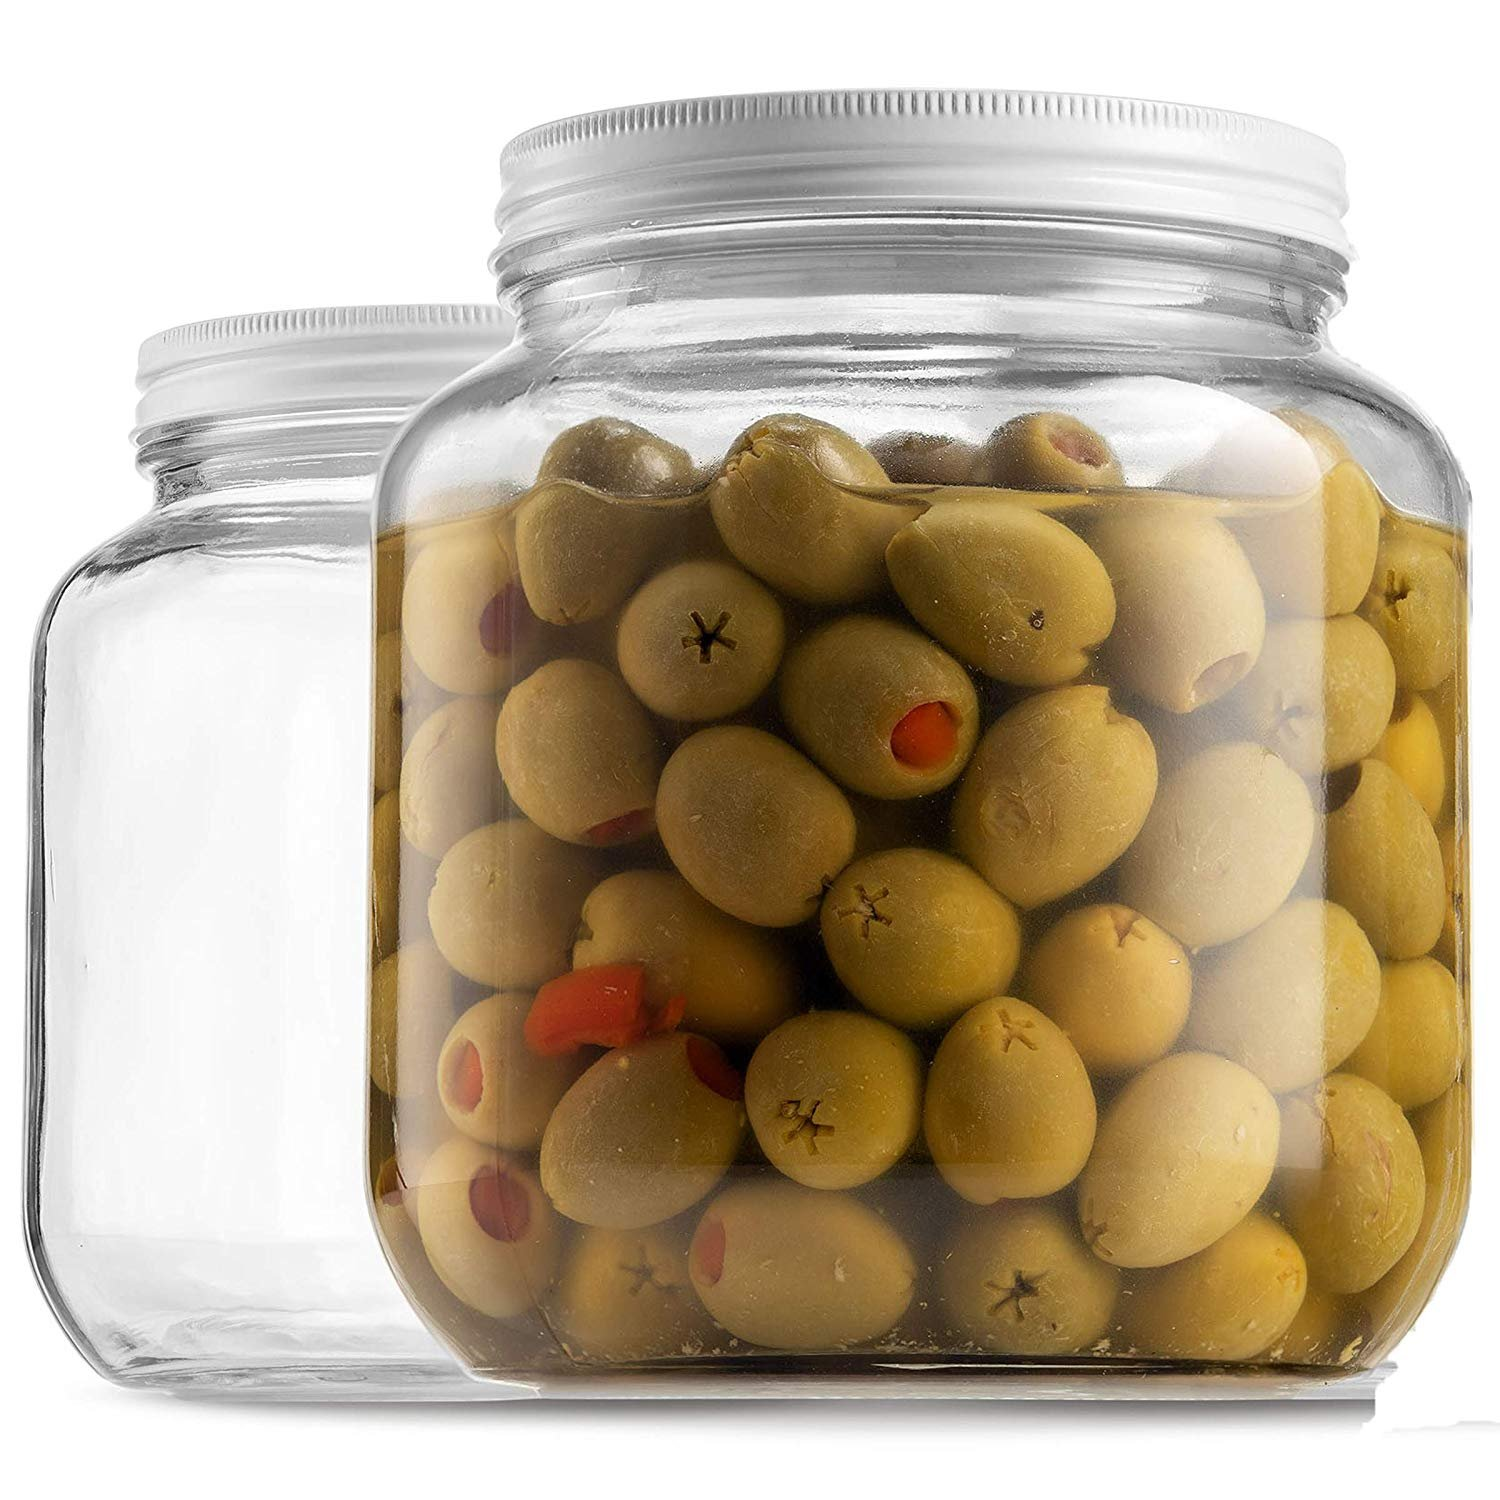 2124fad032f5 Details about Half Gallon Glass Mason Jar (64 Oz) Wide Mouth with Metal  Airtight Lid, USDA...